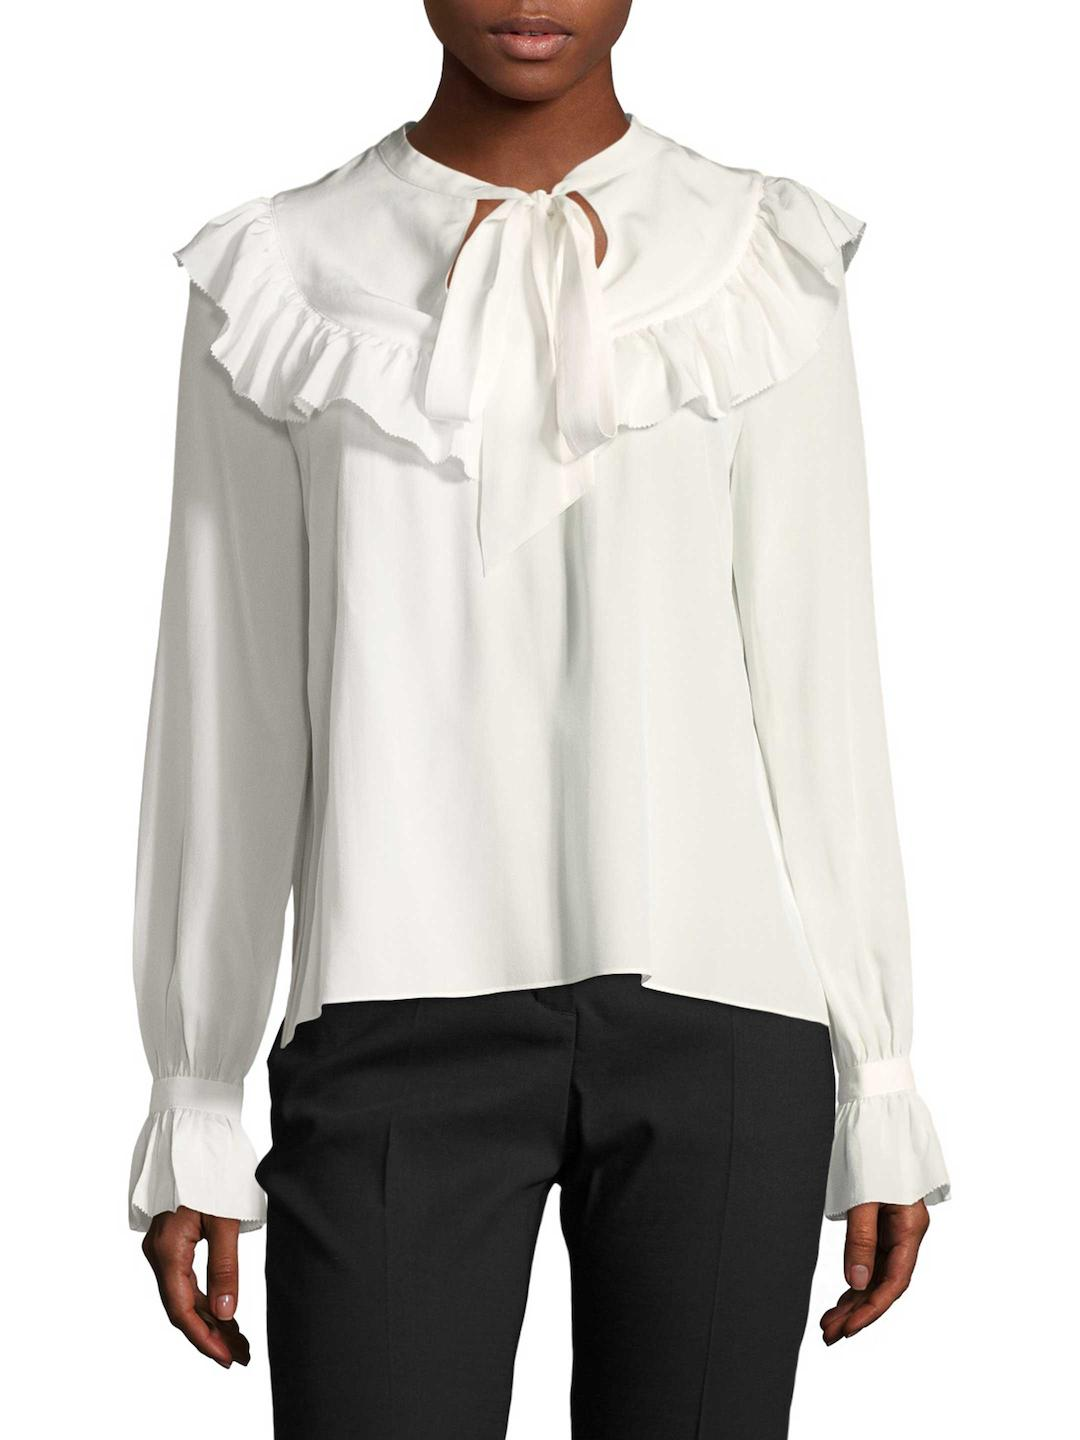 Outlet Comfortable Temperley London Woman Sunray Ruffled Tie-neck Cotton Shirt White Size 10 Temperley London Sale Low Price 6vycv